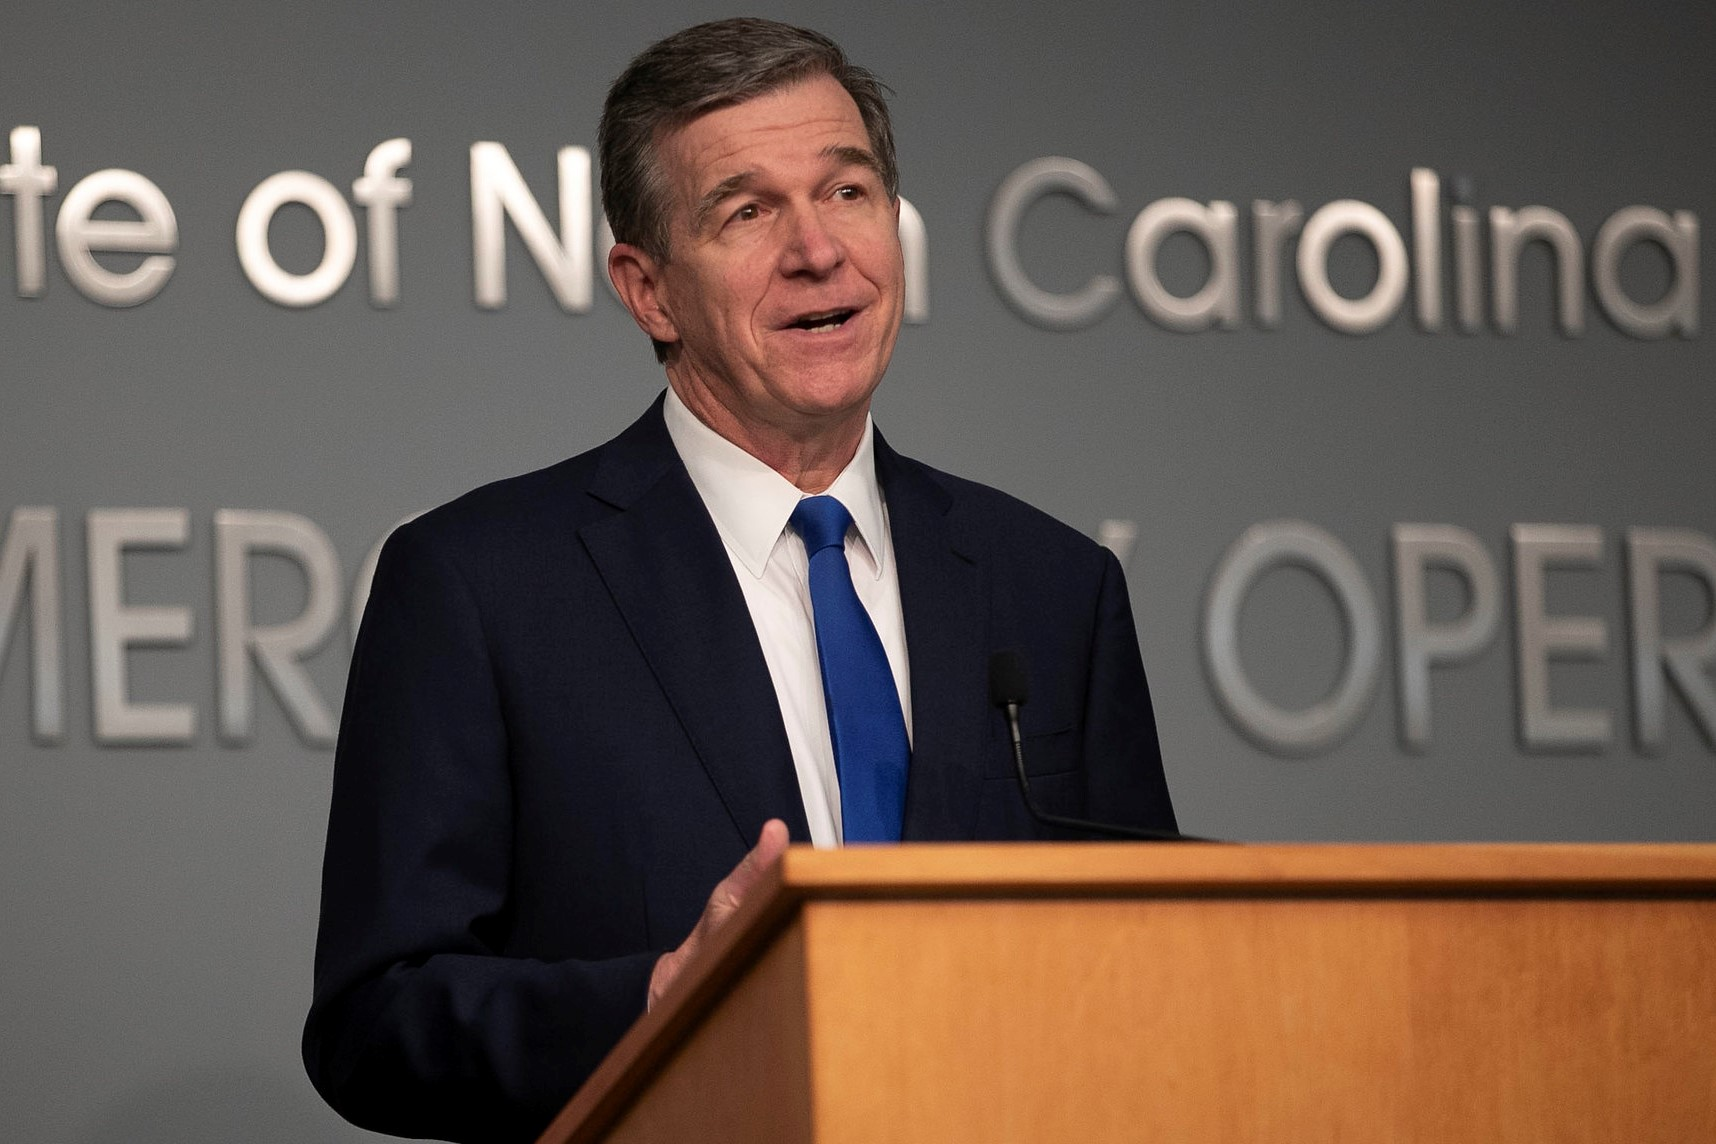 Roy-Cooper-press-conference-062420